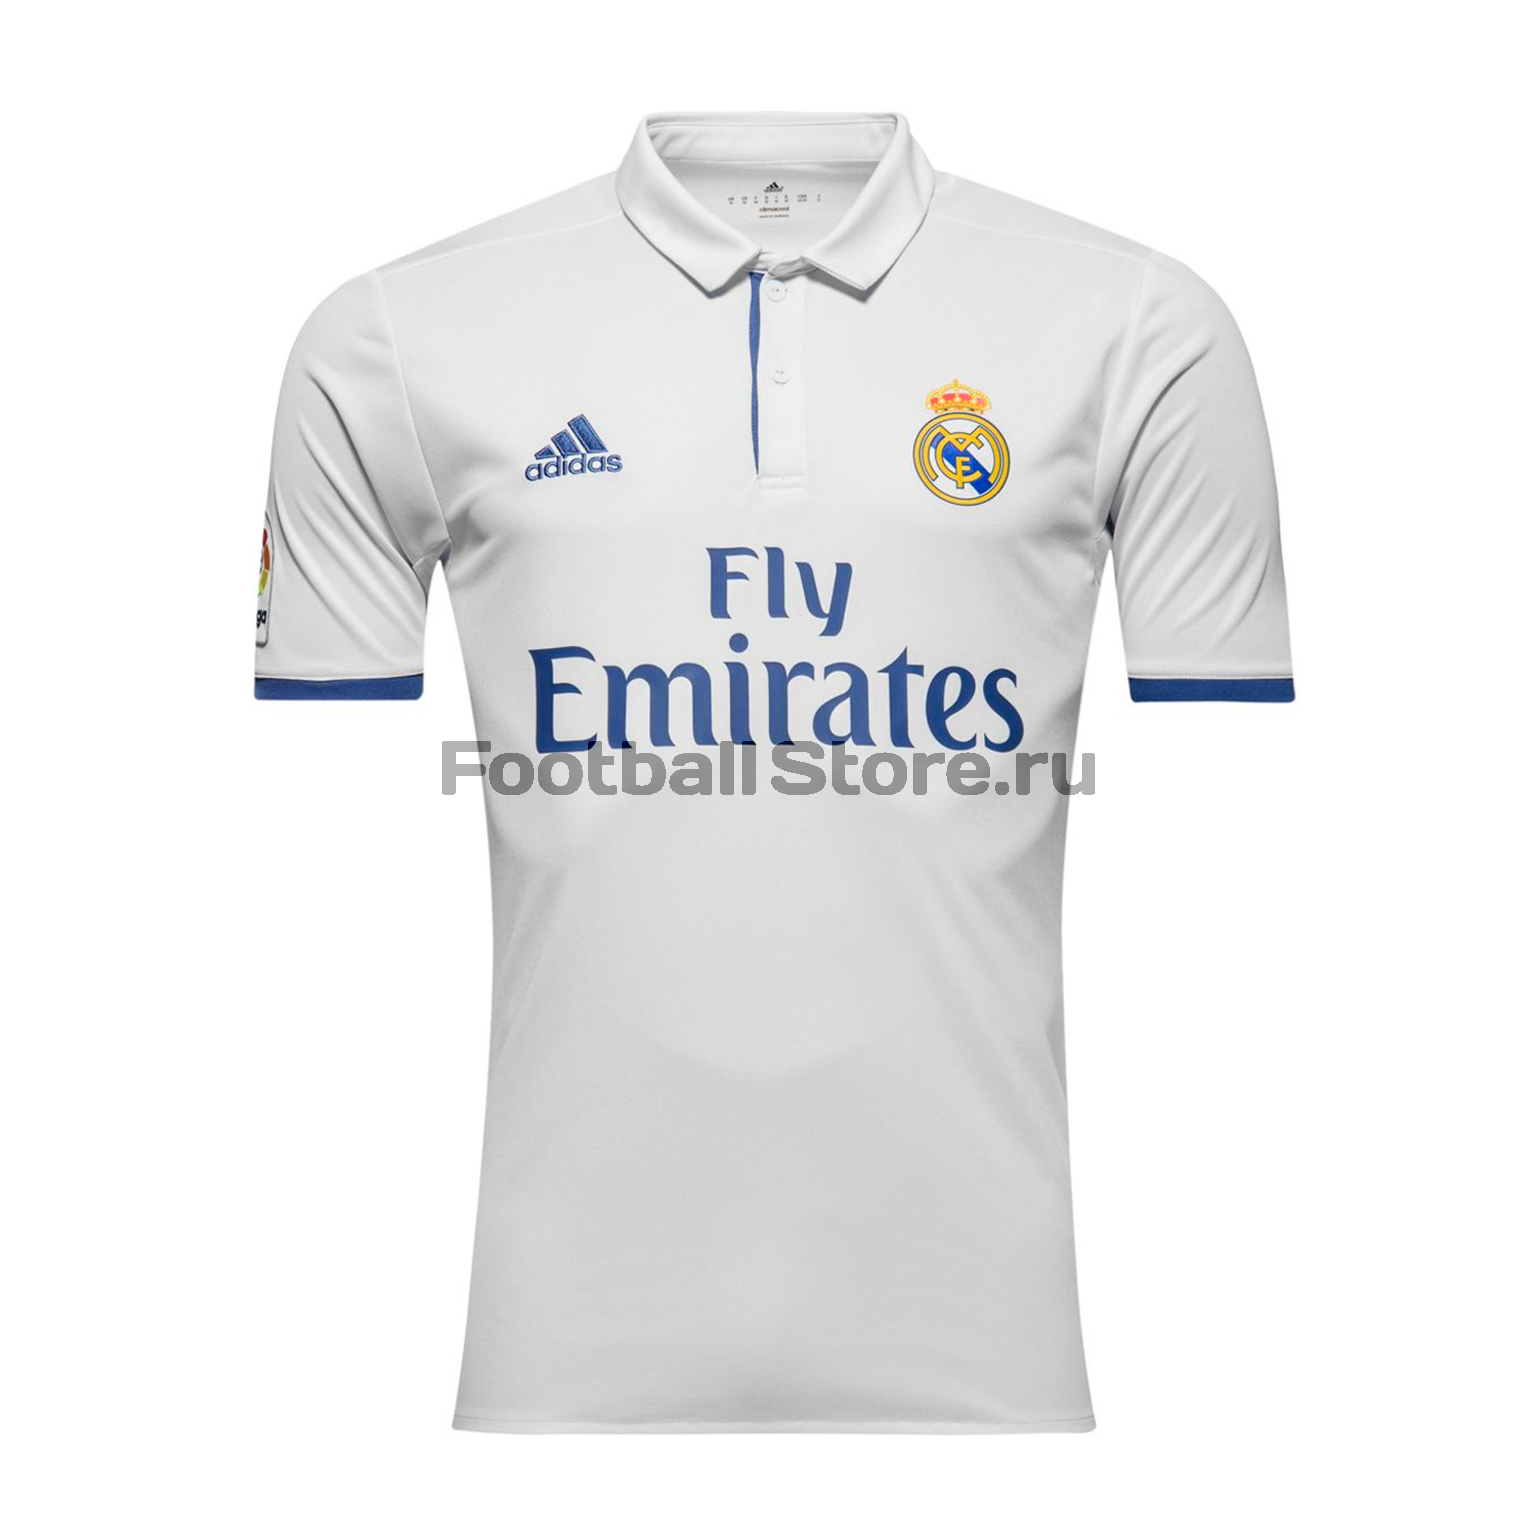 Real Madrid Adidas Футболка игровая Adidas Real Madrid Home S94992 adidas adidas fc real madrid home replica 2016 2017 ss